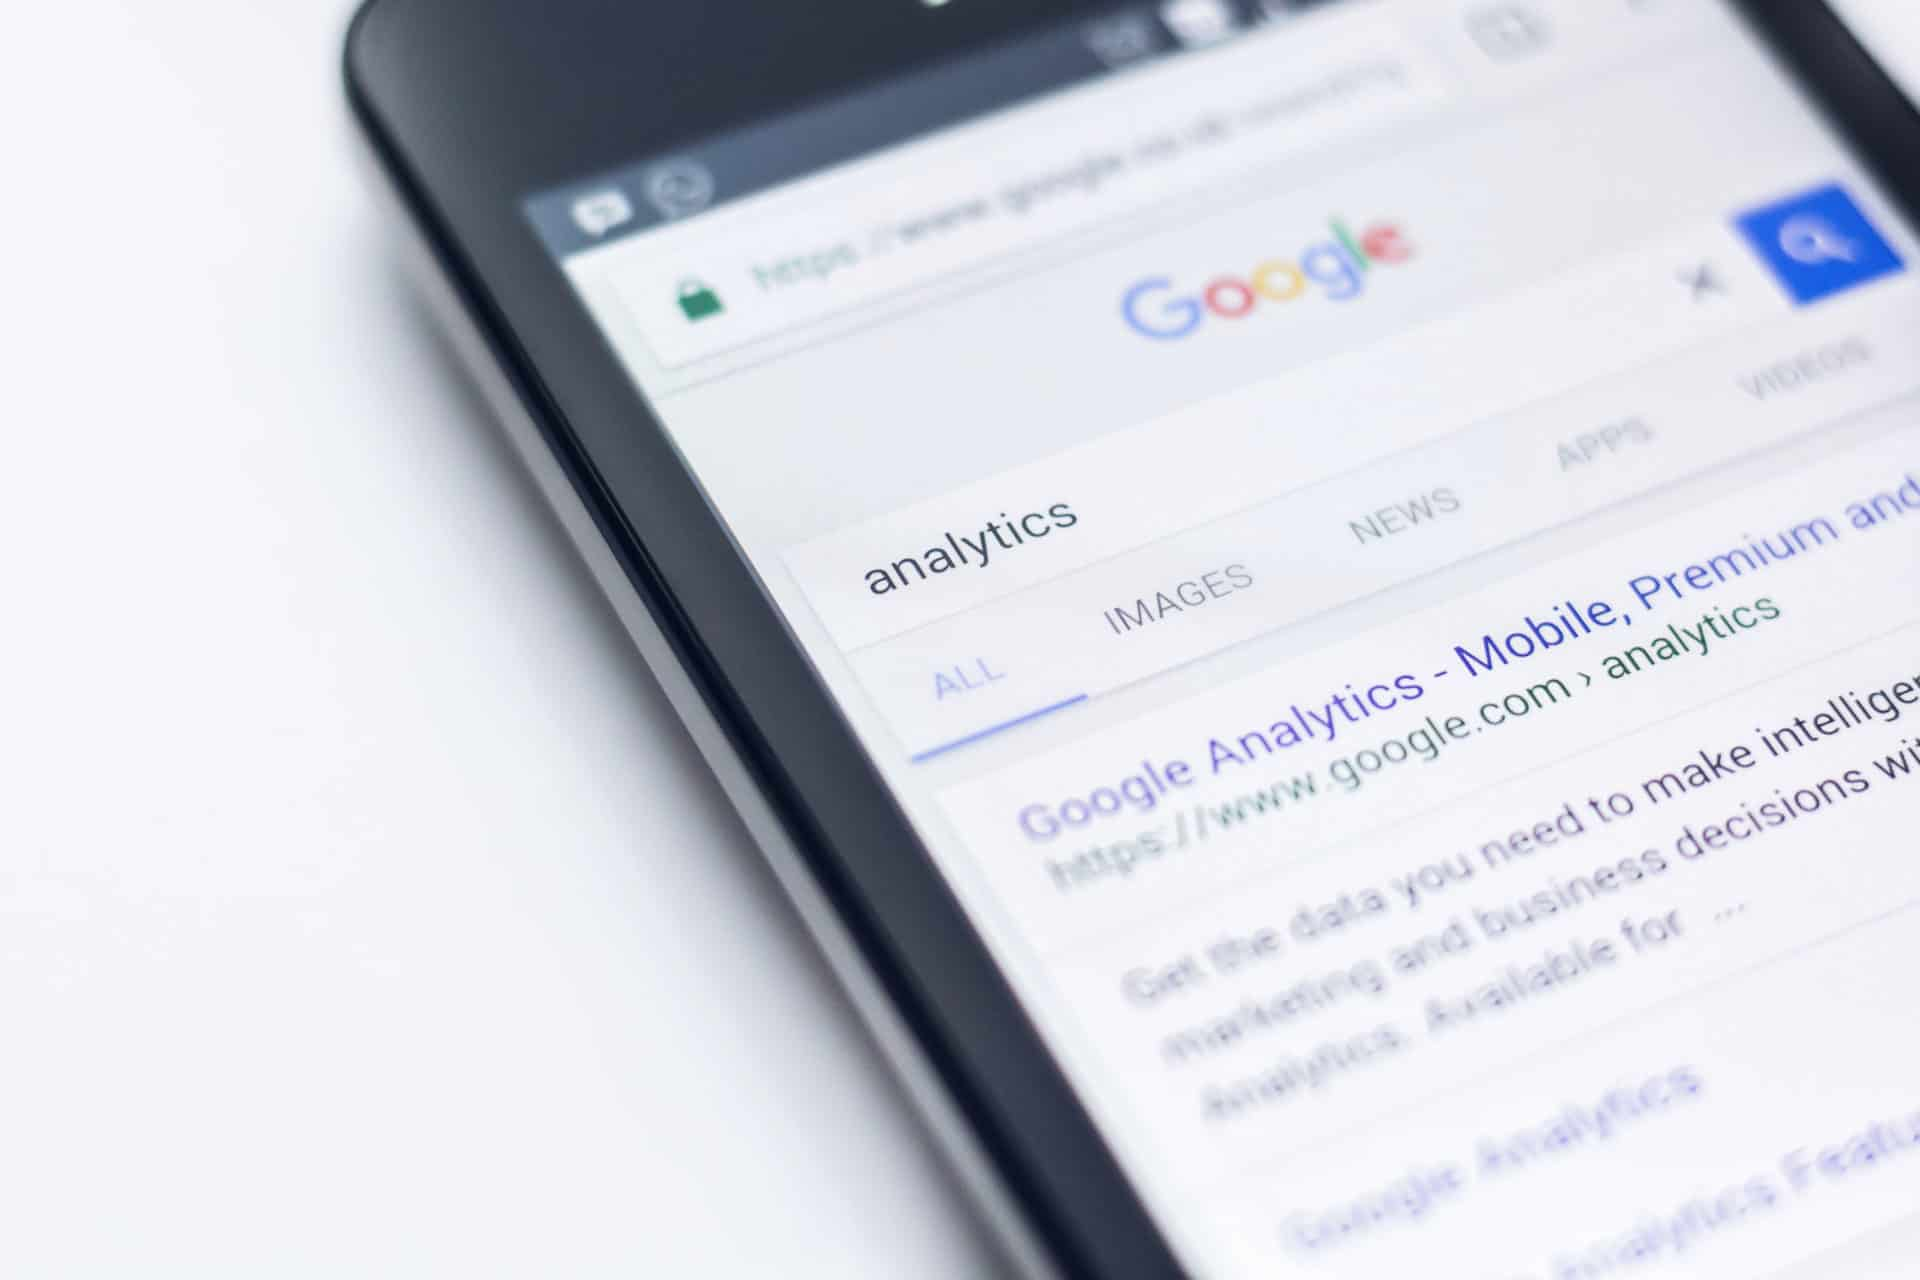 Phone Showing Results For Analytics Search on Google